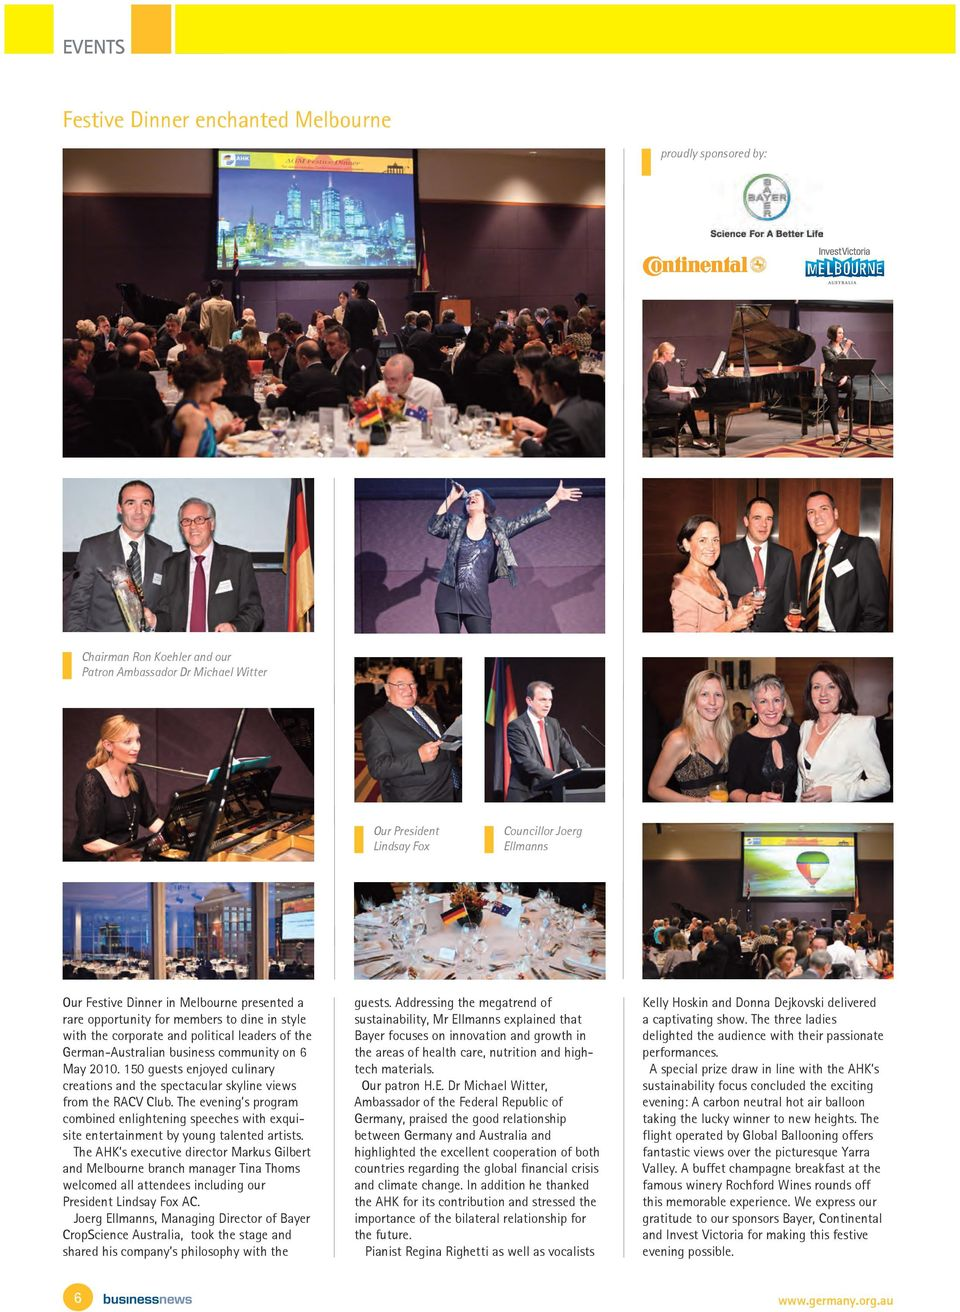 150 guests enjoyed culinary creations and the spectacular skyline views from the RACV Club. The evening s program combined enlightening speeches with exquisite entertainment by young talented artists.